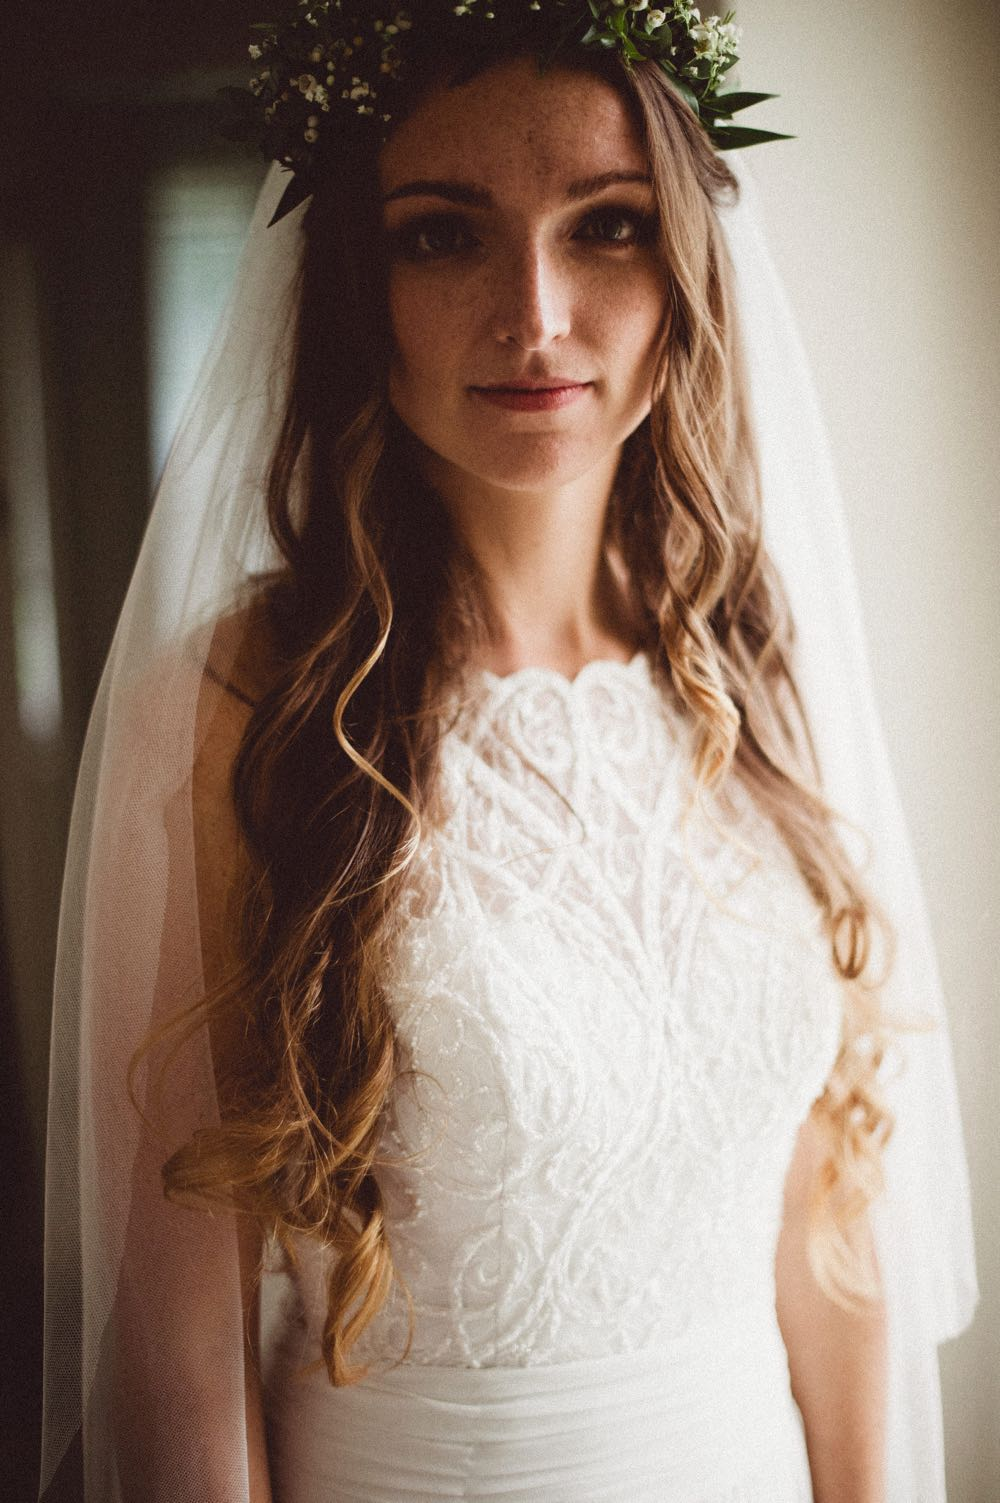 Thia is a close up, head and shoulders shot of the beautiful bride. She is wearing a a white sleeveless dress with lace details. She has long dark hair that she is wearing loose. She is smiling and looking at the camera.